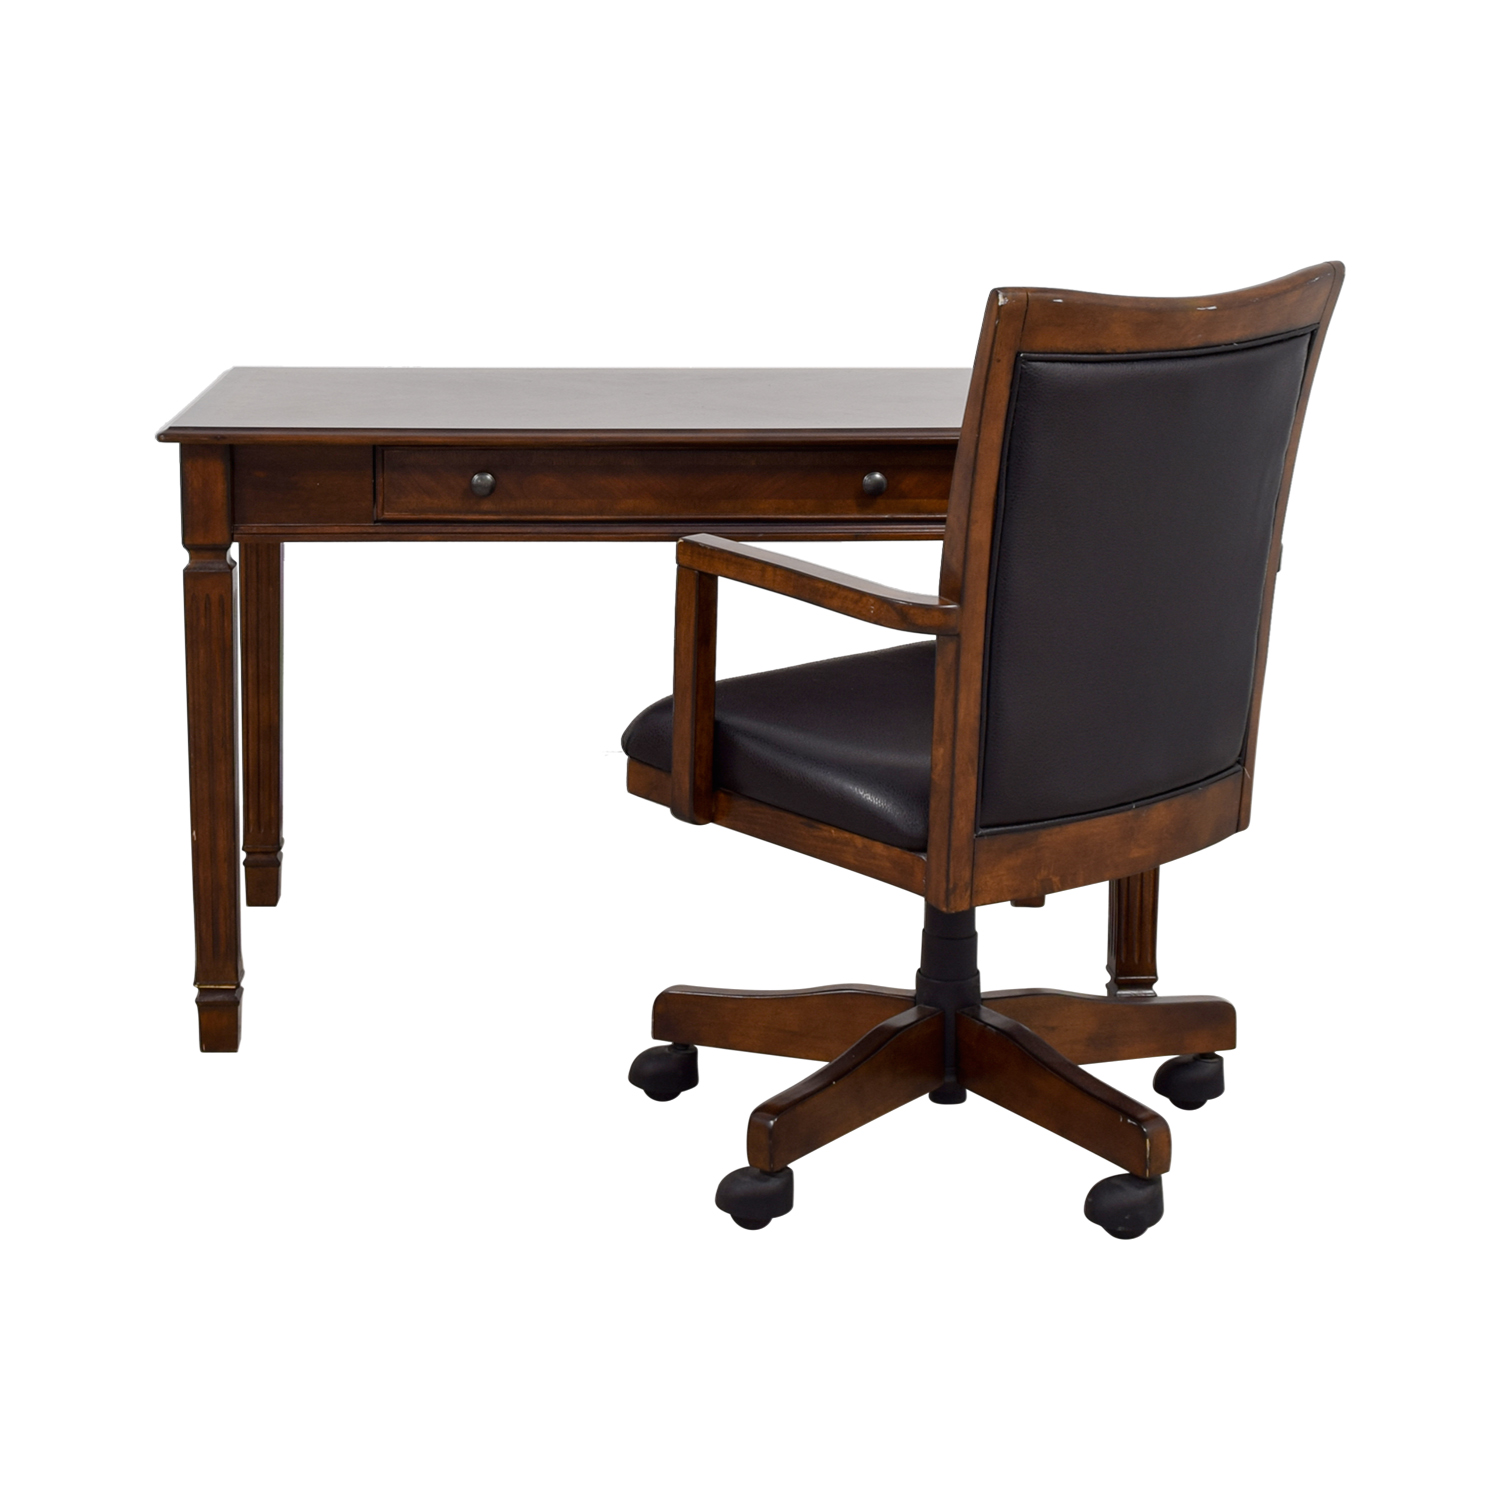 Ashley Furniture Store Ashley Furniture Store Wood Writing Desk and Chair brown